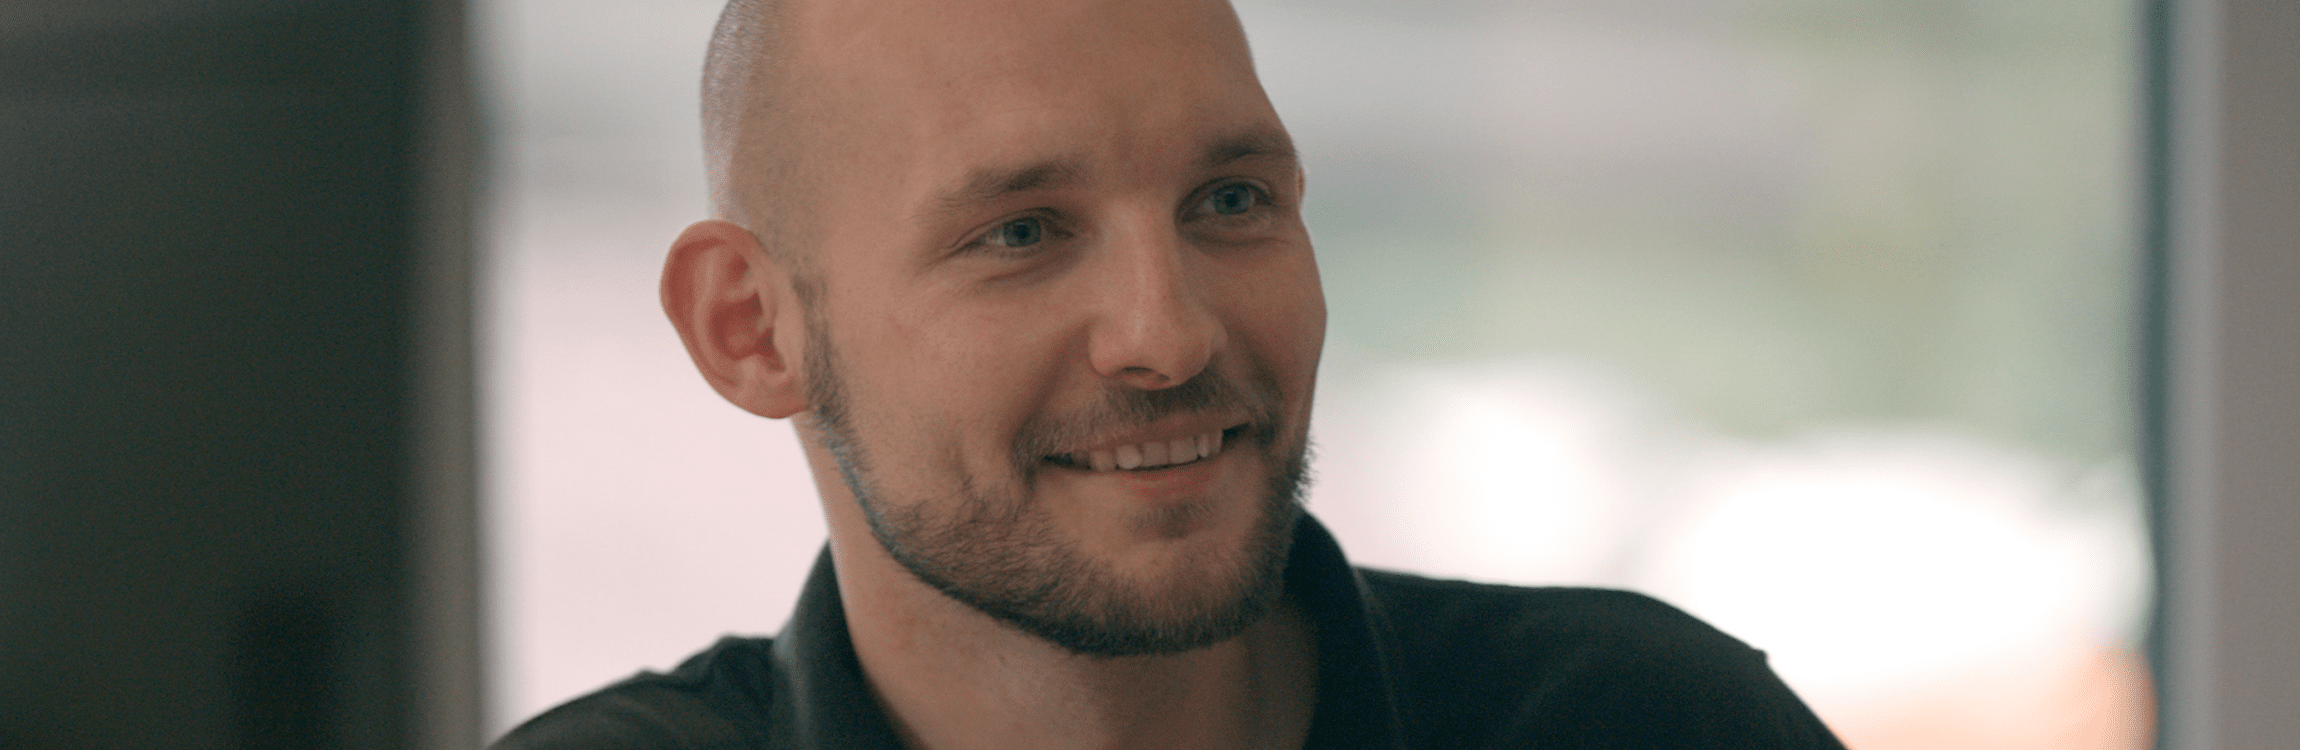 Growing Together - Florian Kaffl, Sales Project Manager at TGW